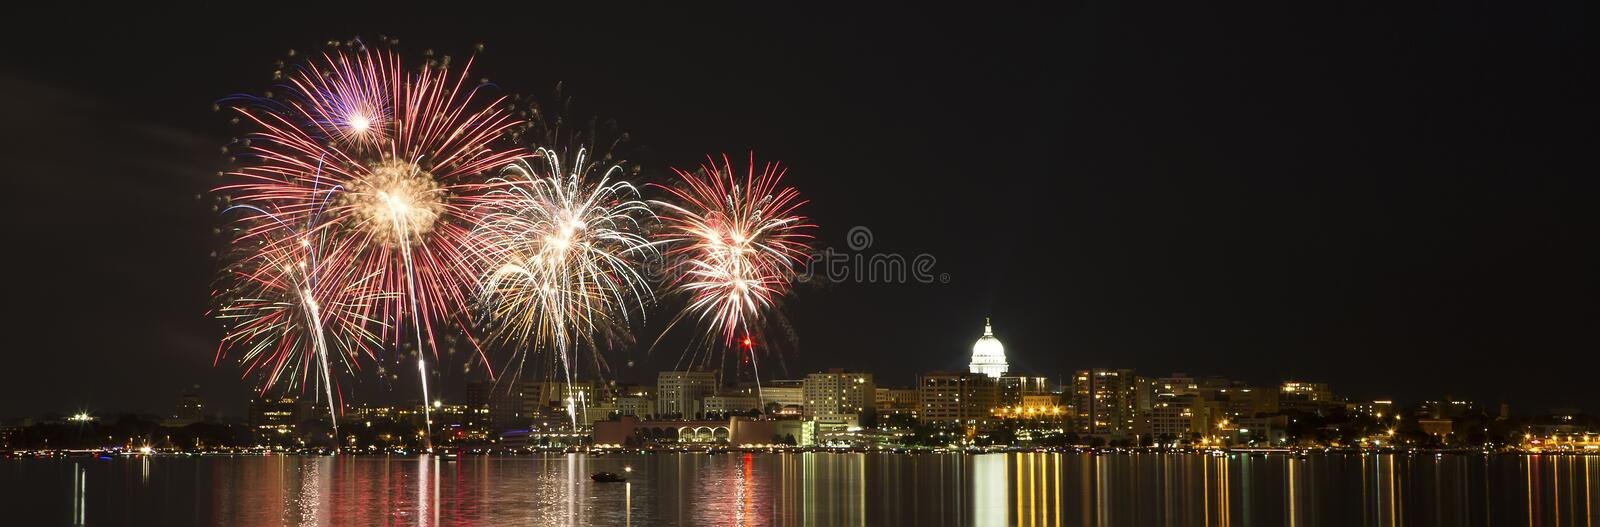 Fireworks over Madison, Wisconsin state capital and Lake Monona stock image